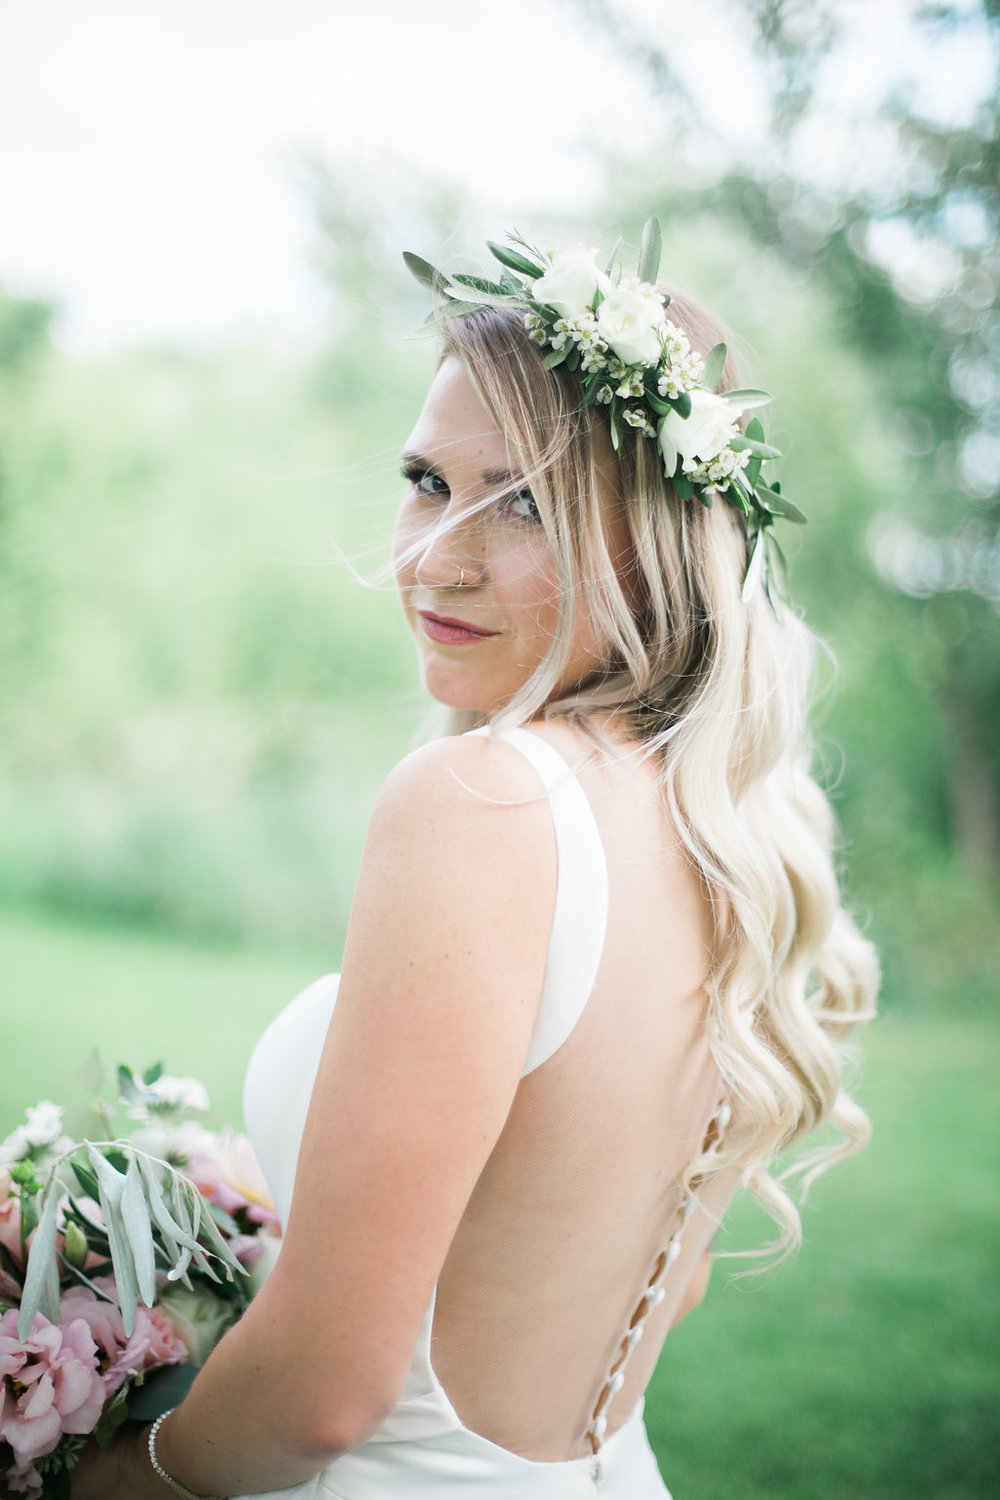 Bridal Hair Flowers - Floral Crown Ideas